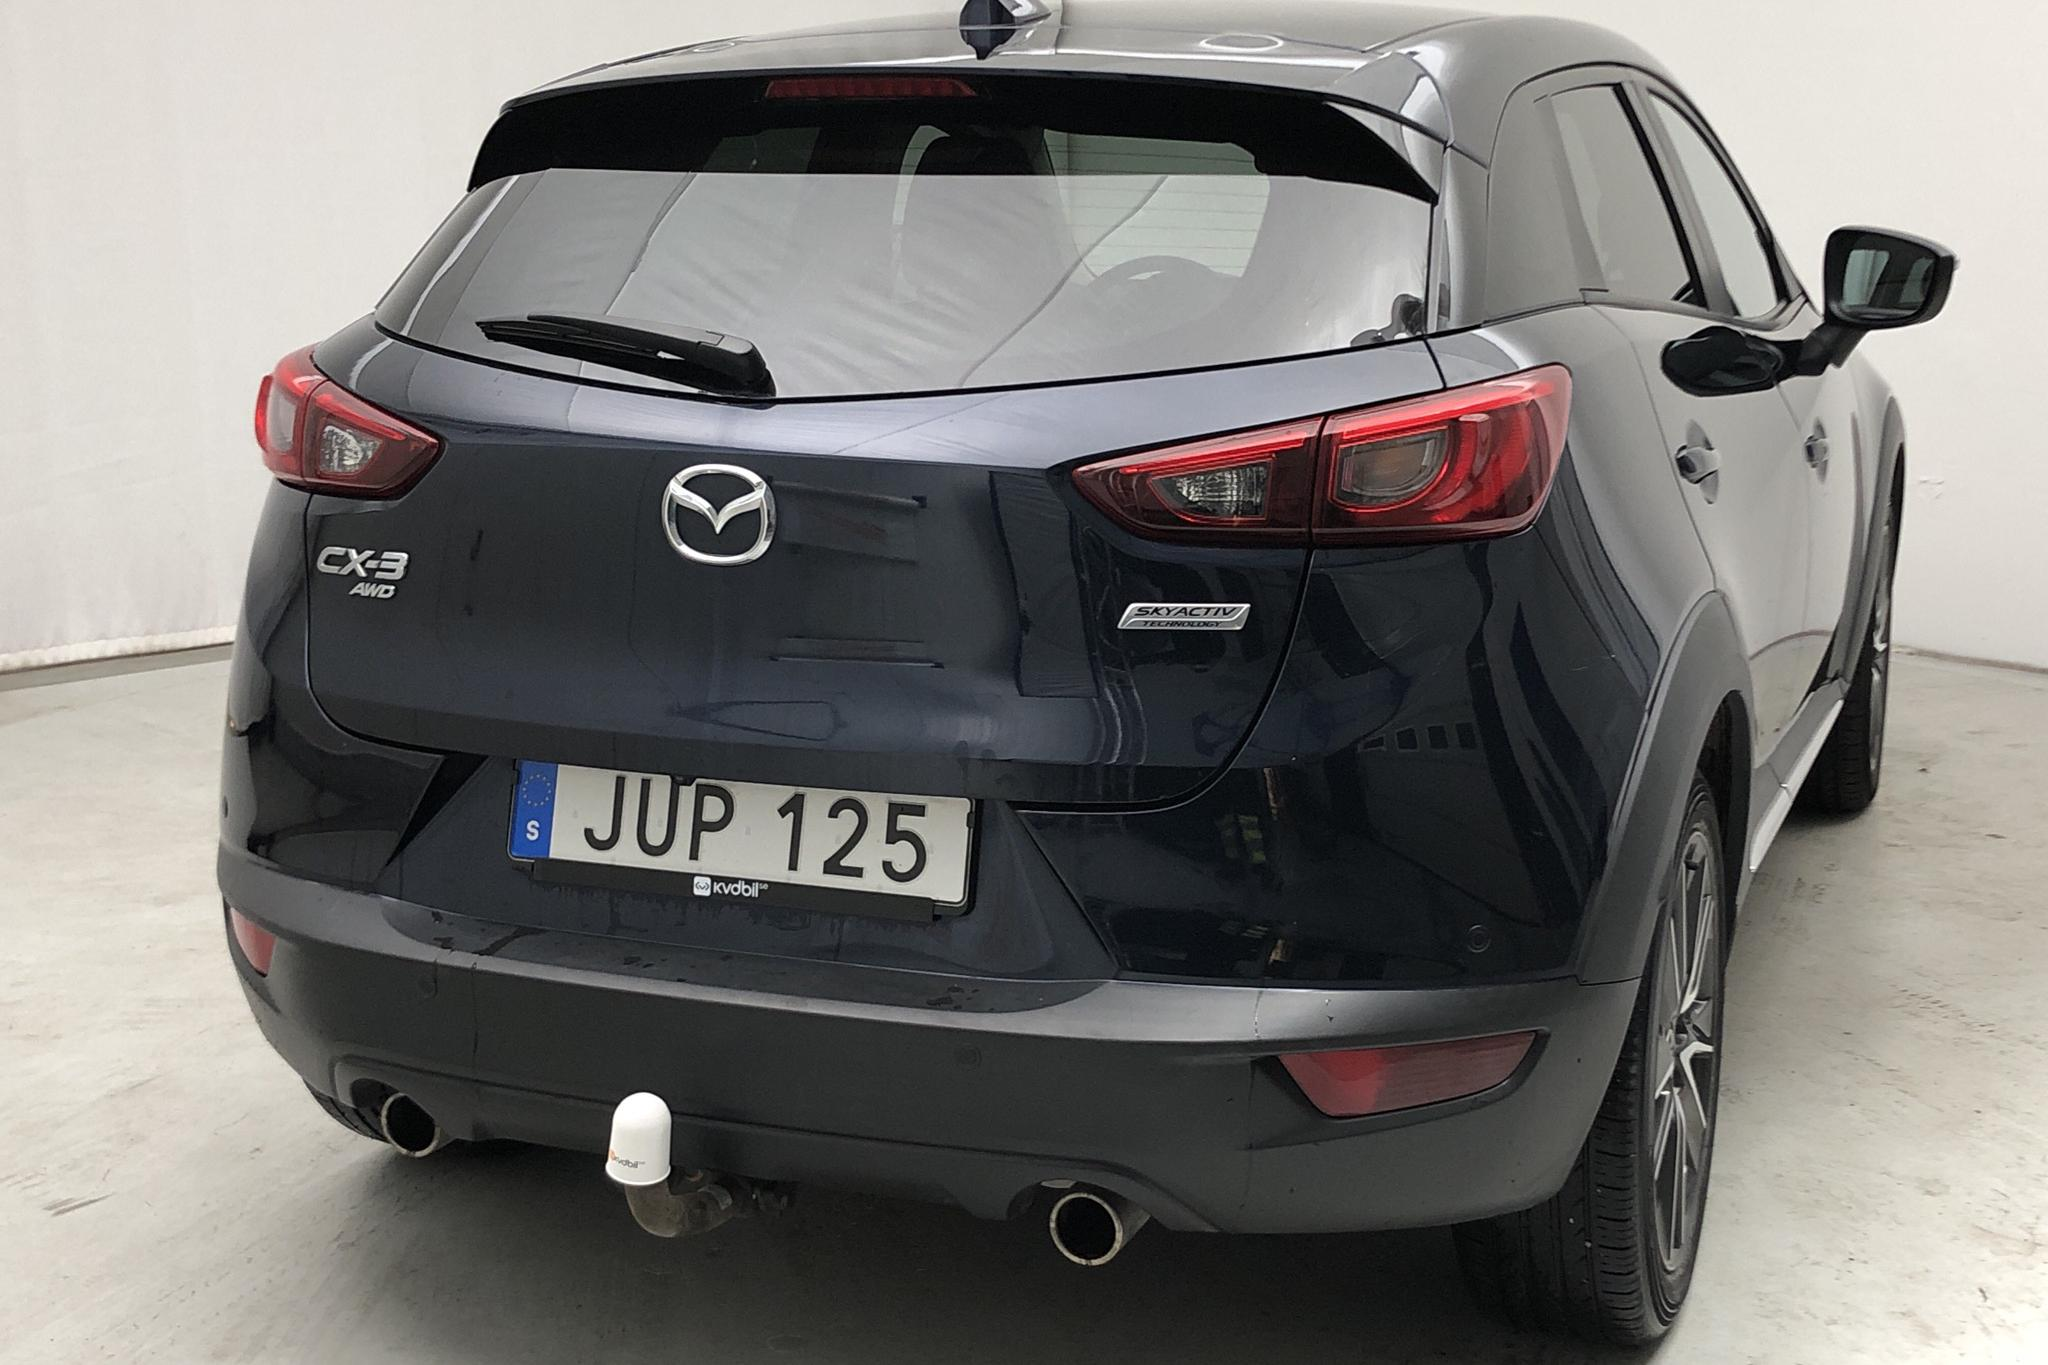 Mazda CX-3 2.0 AWD (150hk) - 123 000 km - Automatic - blue - 2016